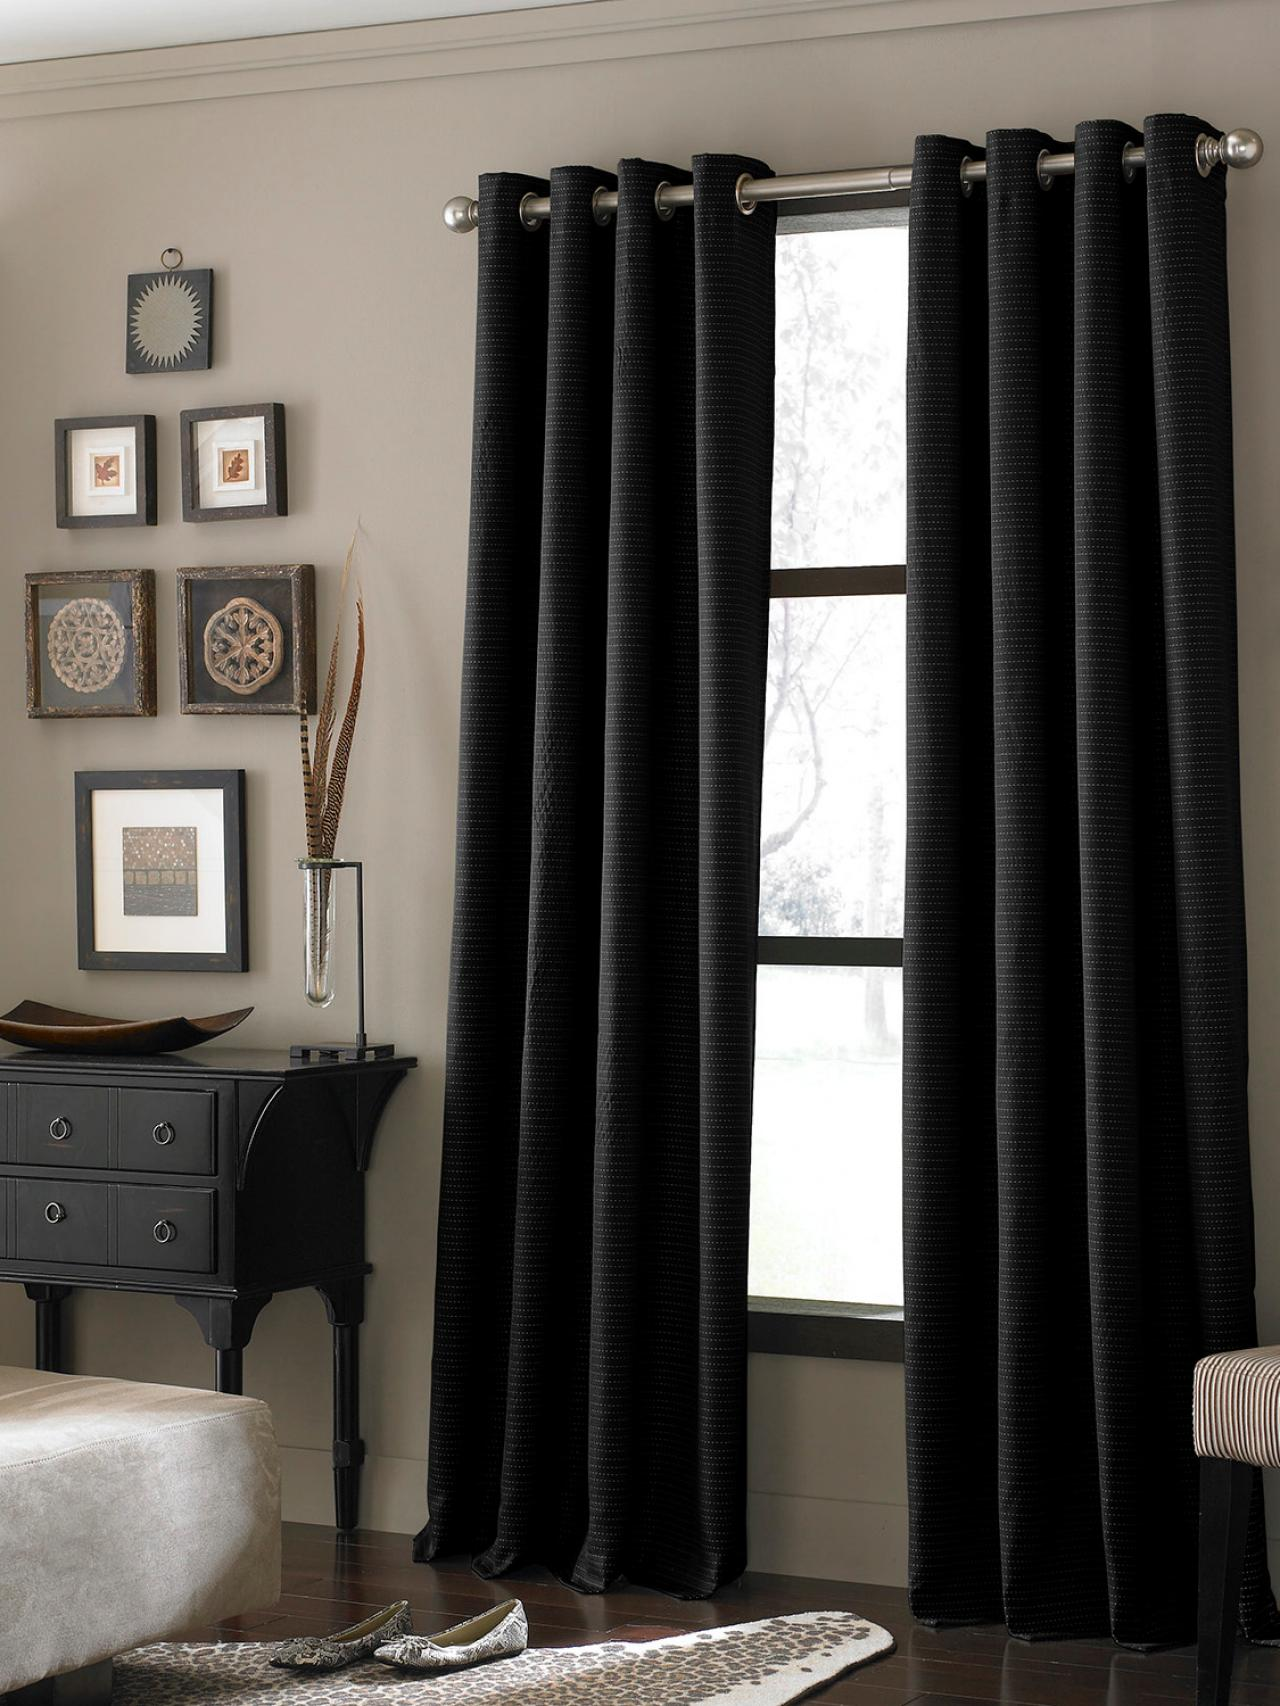 black-textured-curtains & Different Living Room Window Treatments